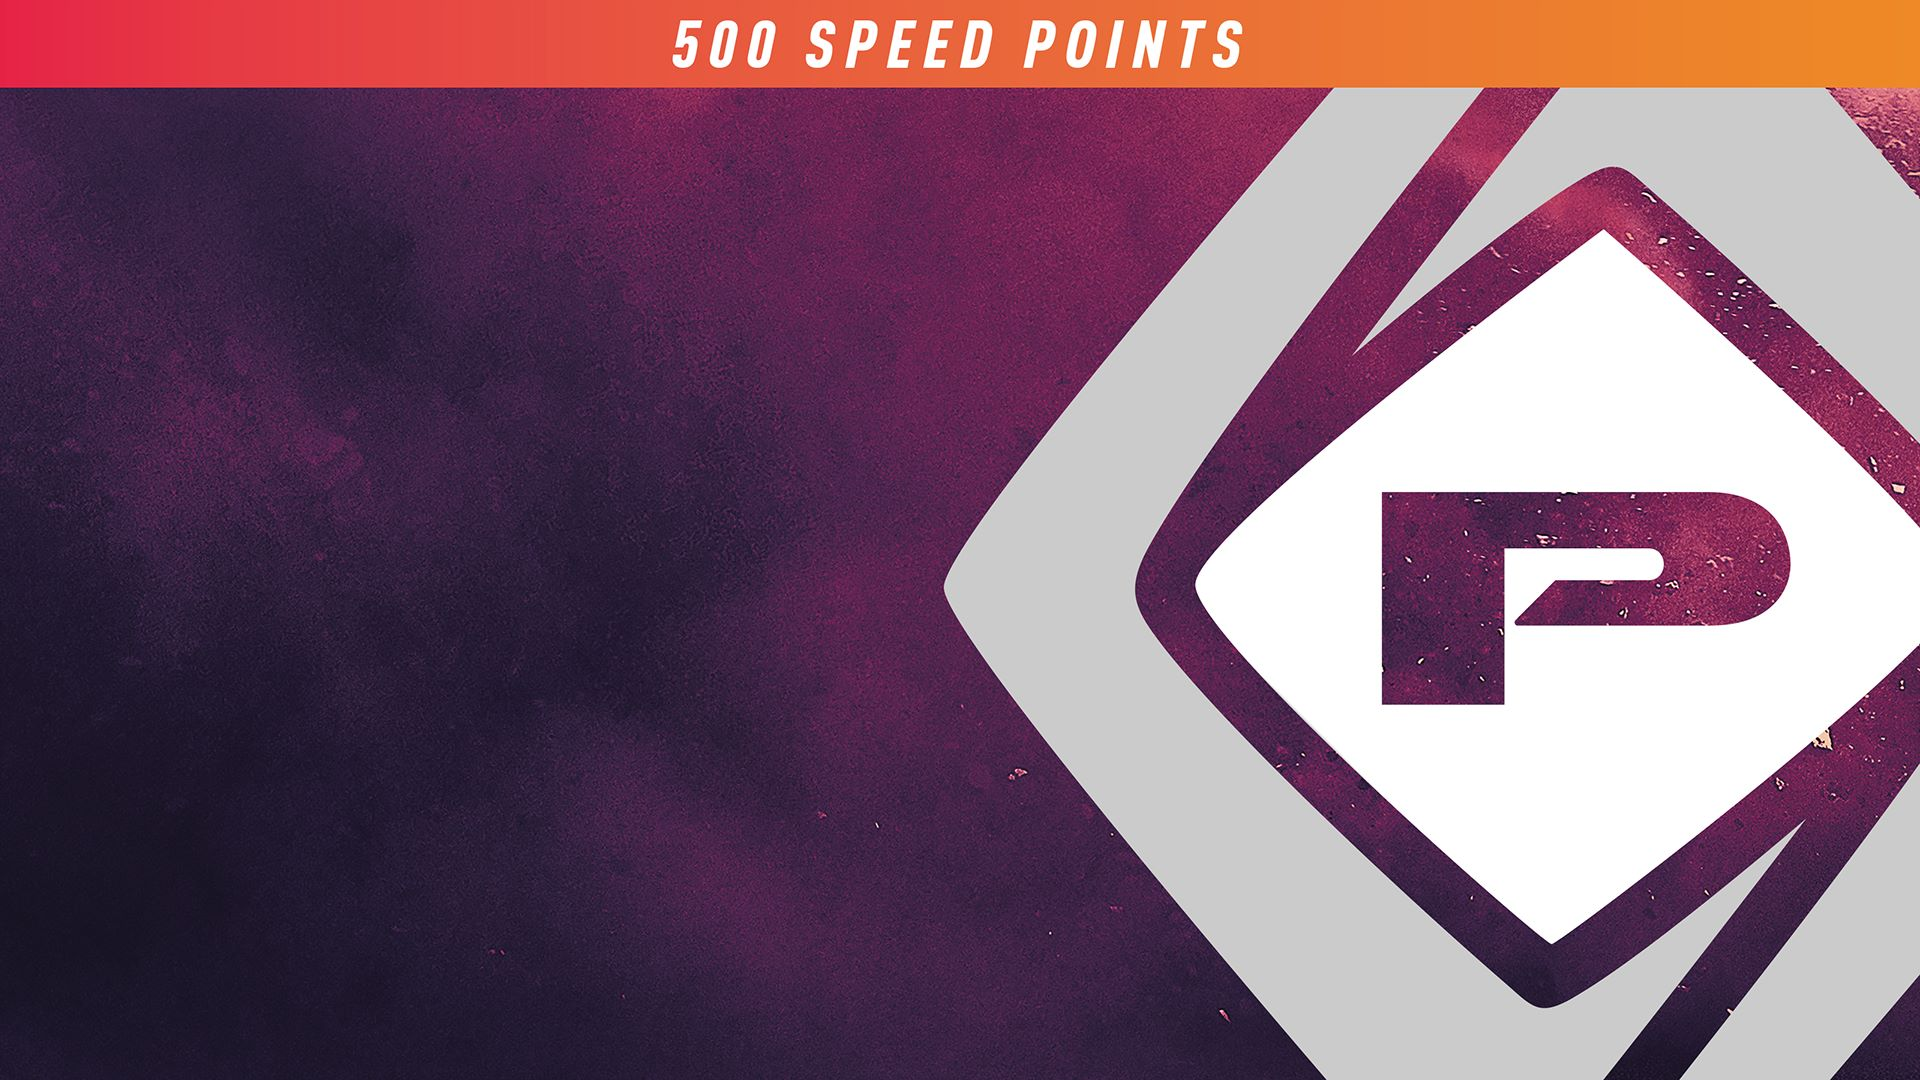 NFS Payback 500 Speed Points